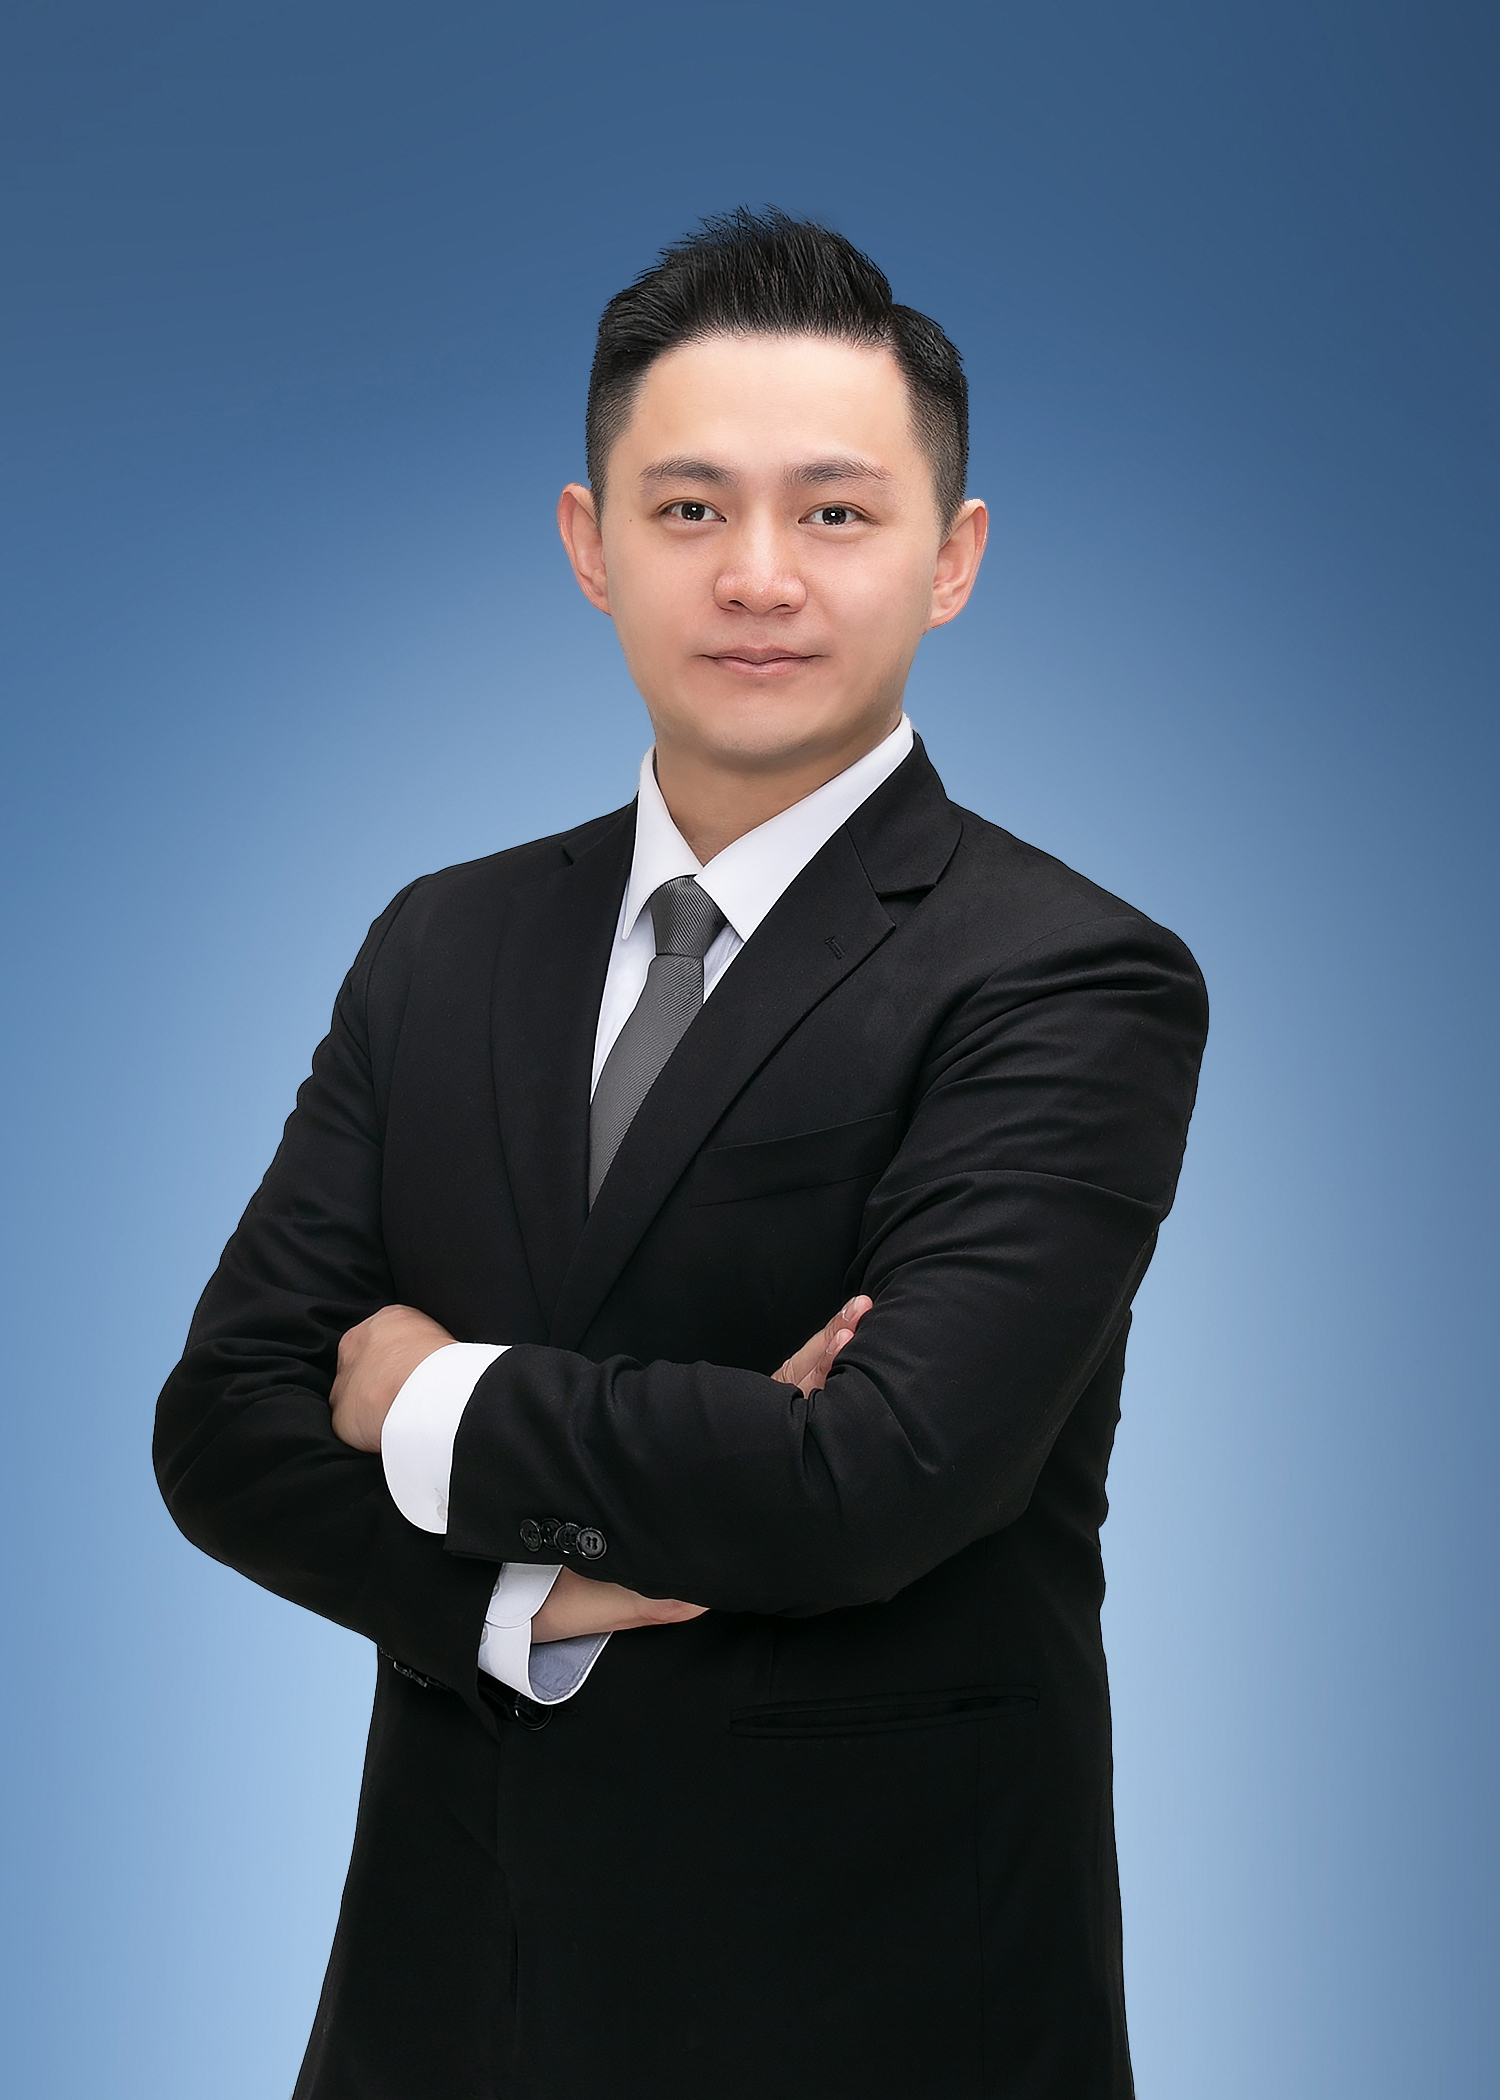 A survey led by Dr. Jeremy TEOH, Assistant Professor of the Division of Urology of the Department of Surgery at CU Medicine, revealed substantial disruptions in urological care globally amid the COVID-19 pandemic. The degree of cut-down of urological services increased with the degree of COVID-19 outbreak.